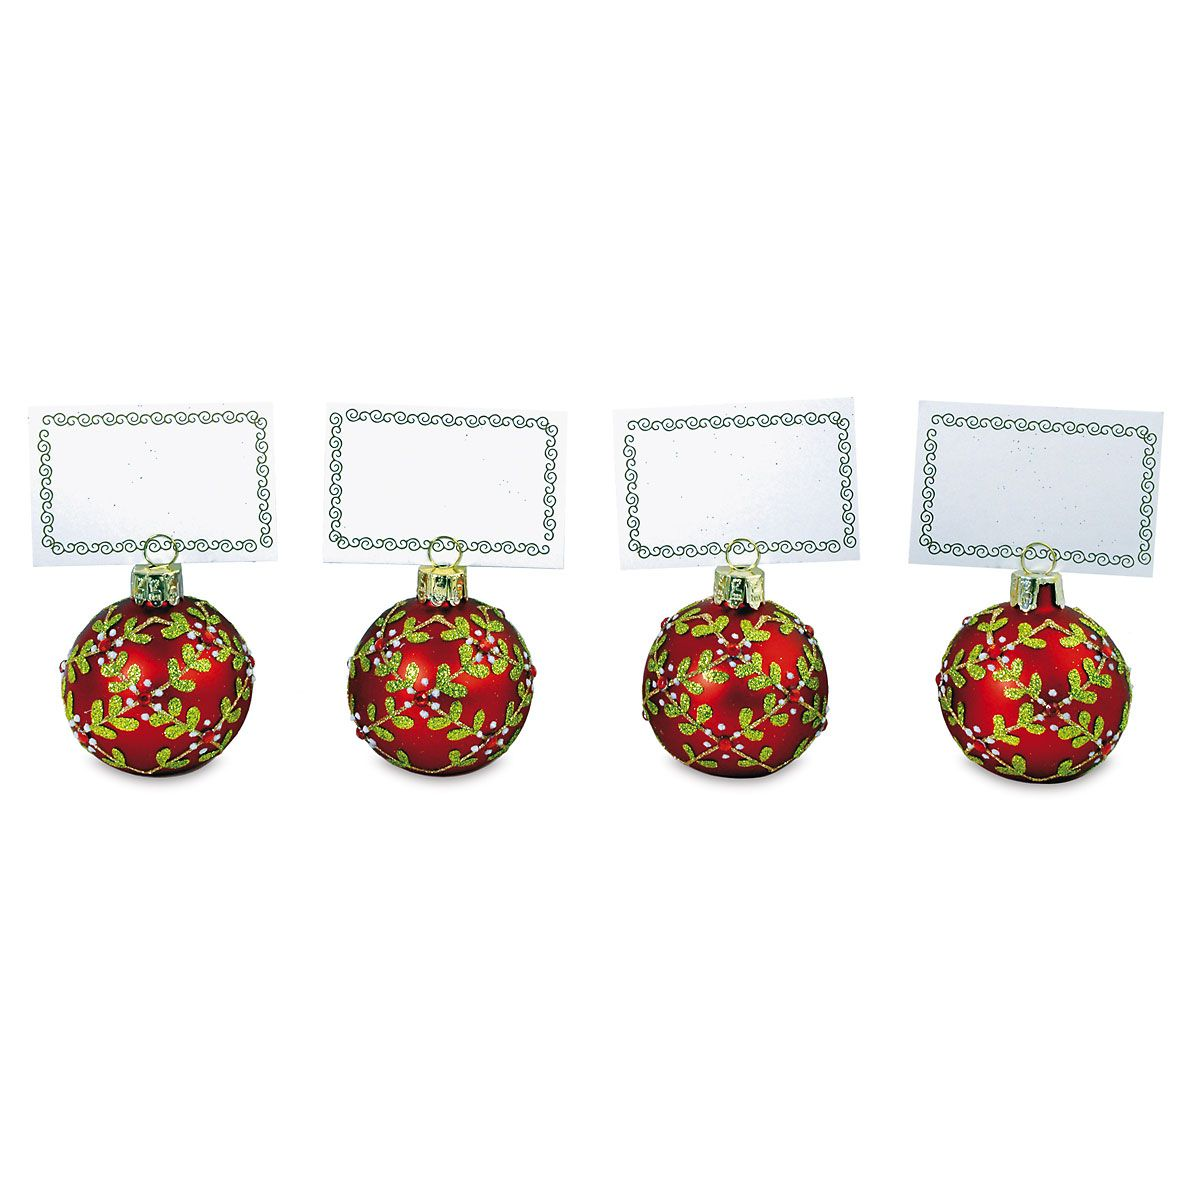 Red Berry Place Card Holders